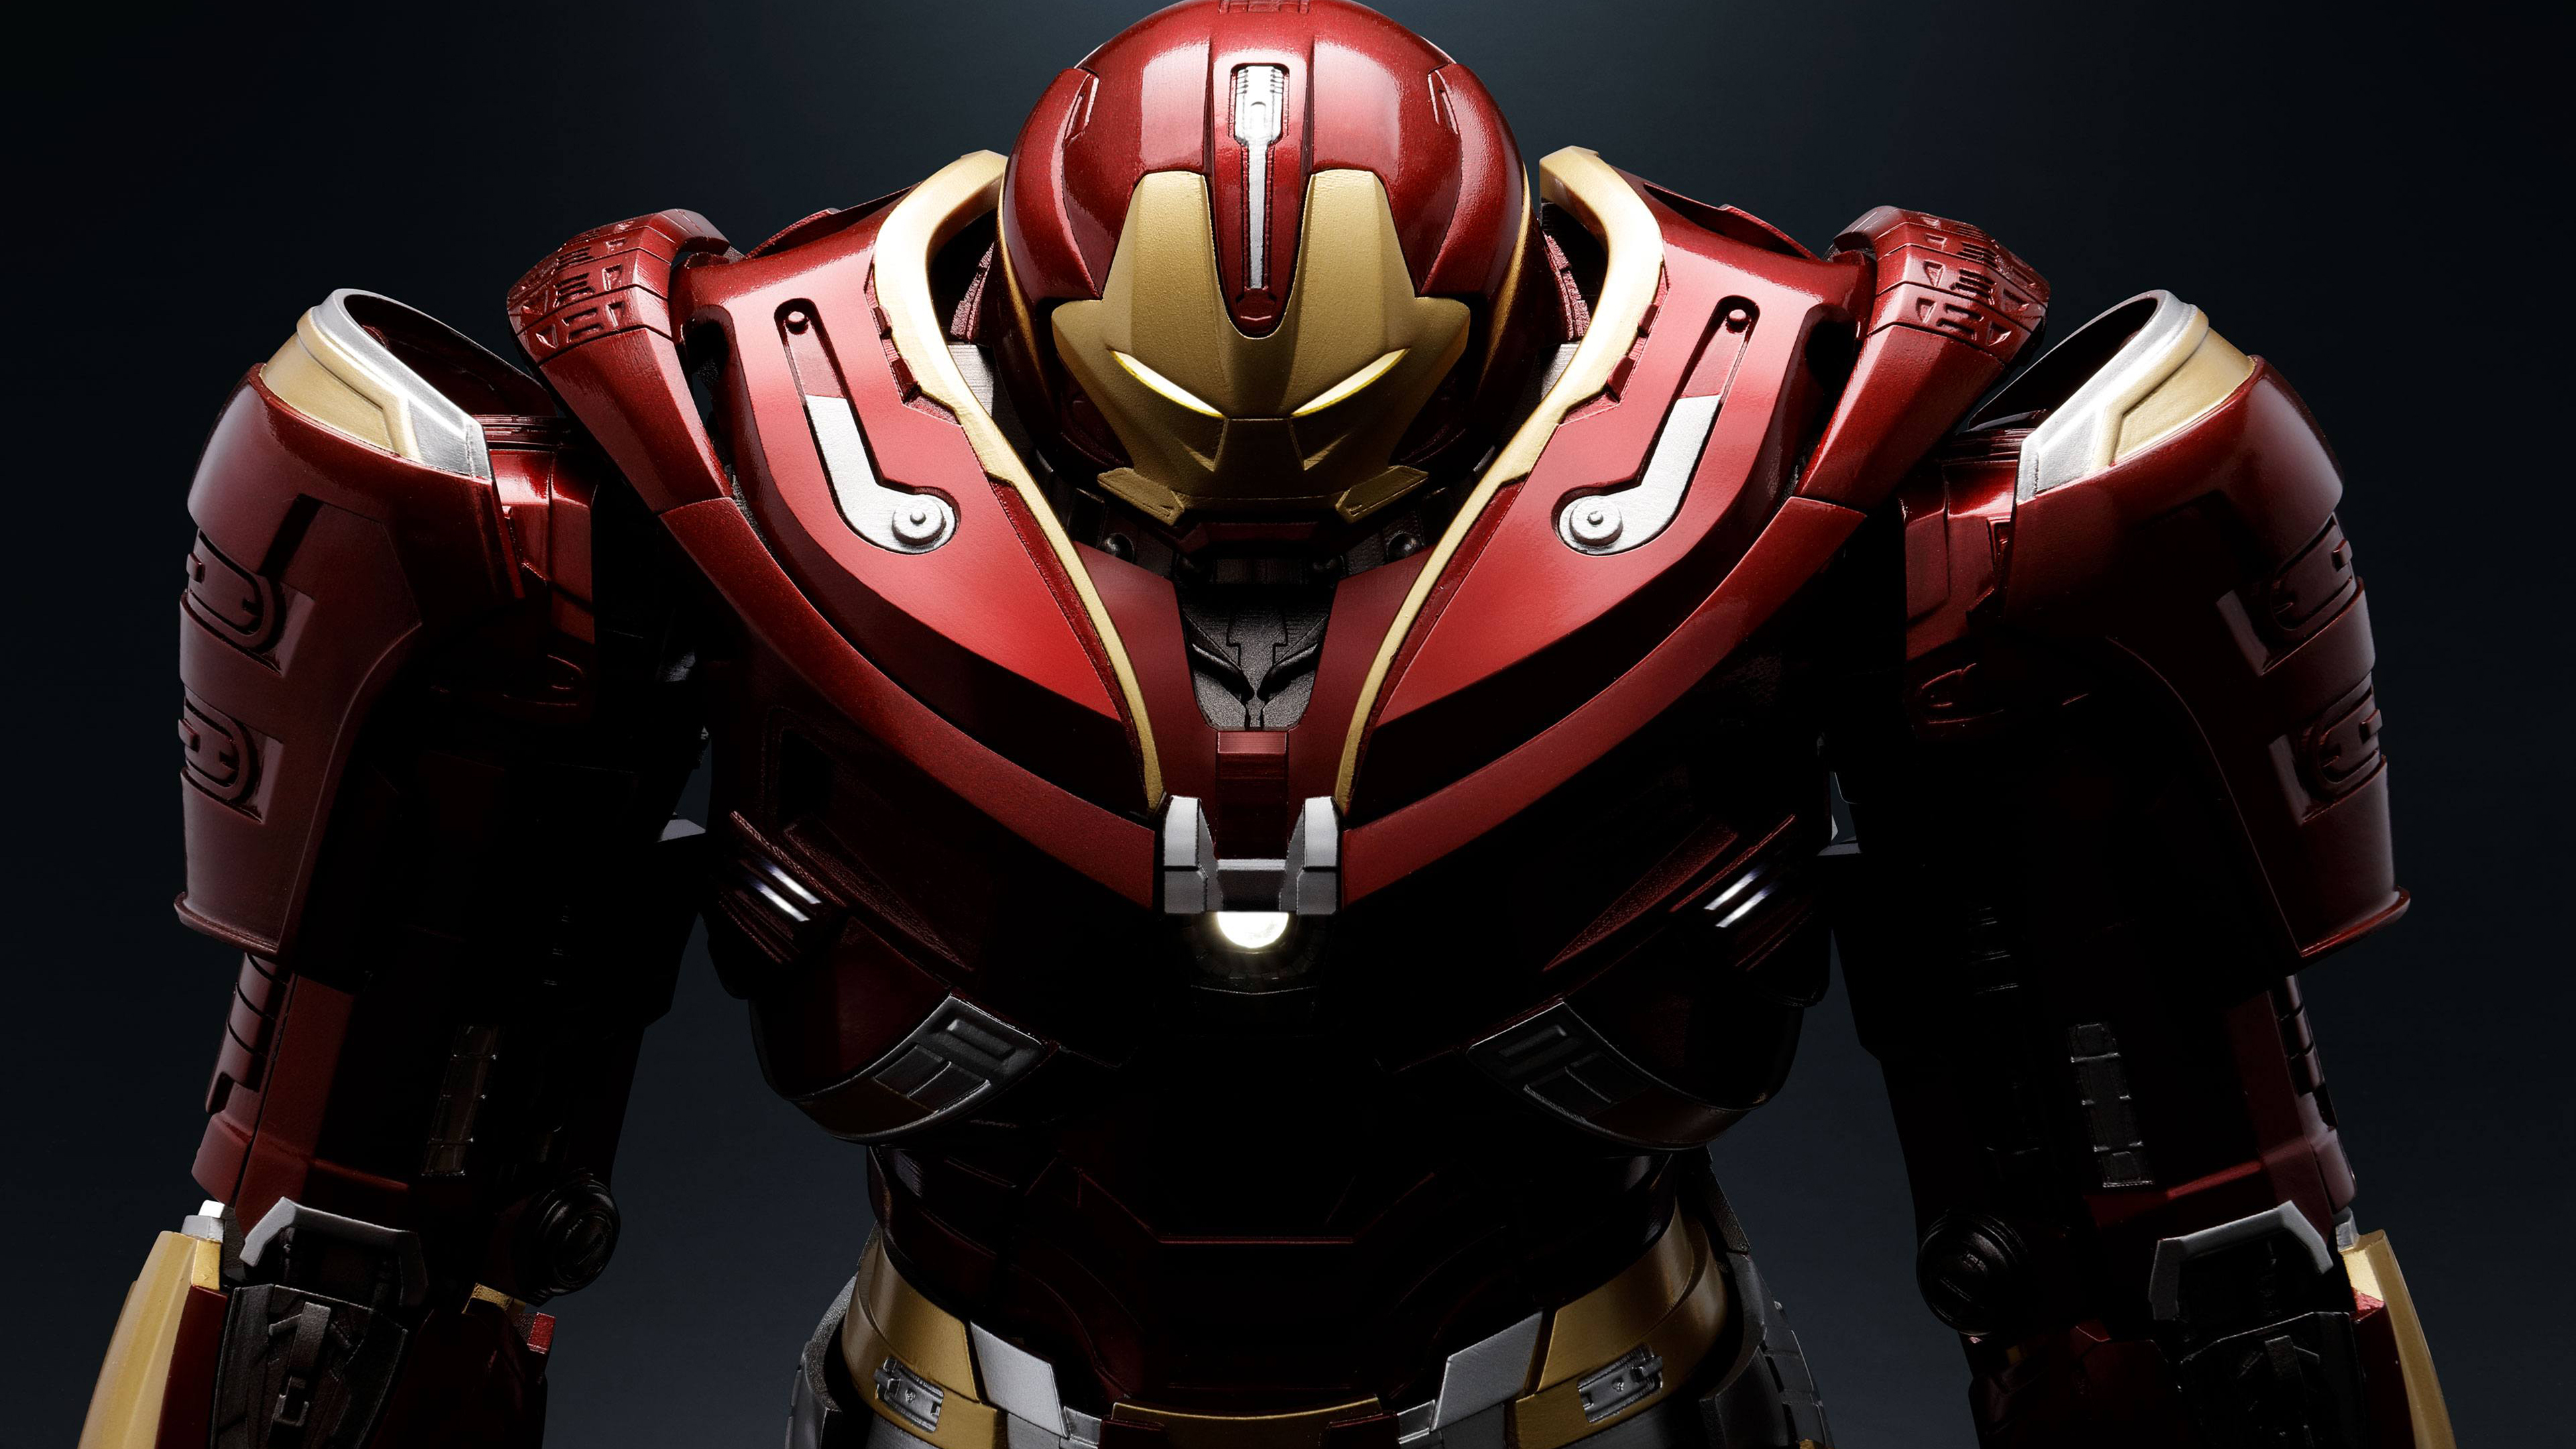 Hulkbuster Iron Man Suit 4K Wallpapers HD Wallpapers 3840x2160